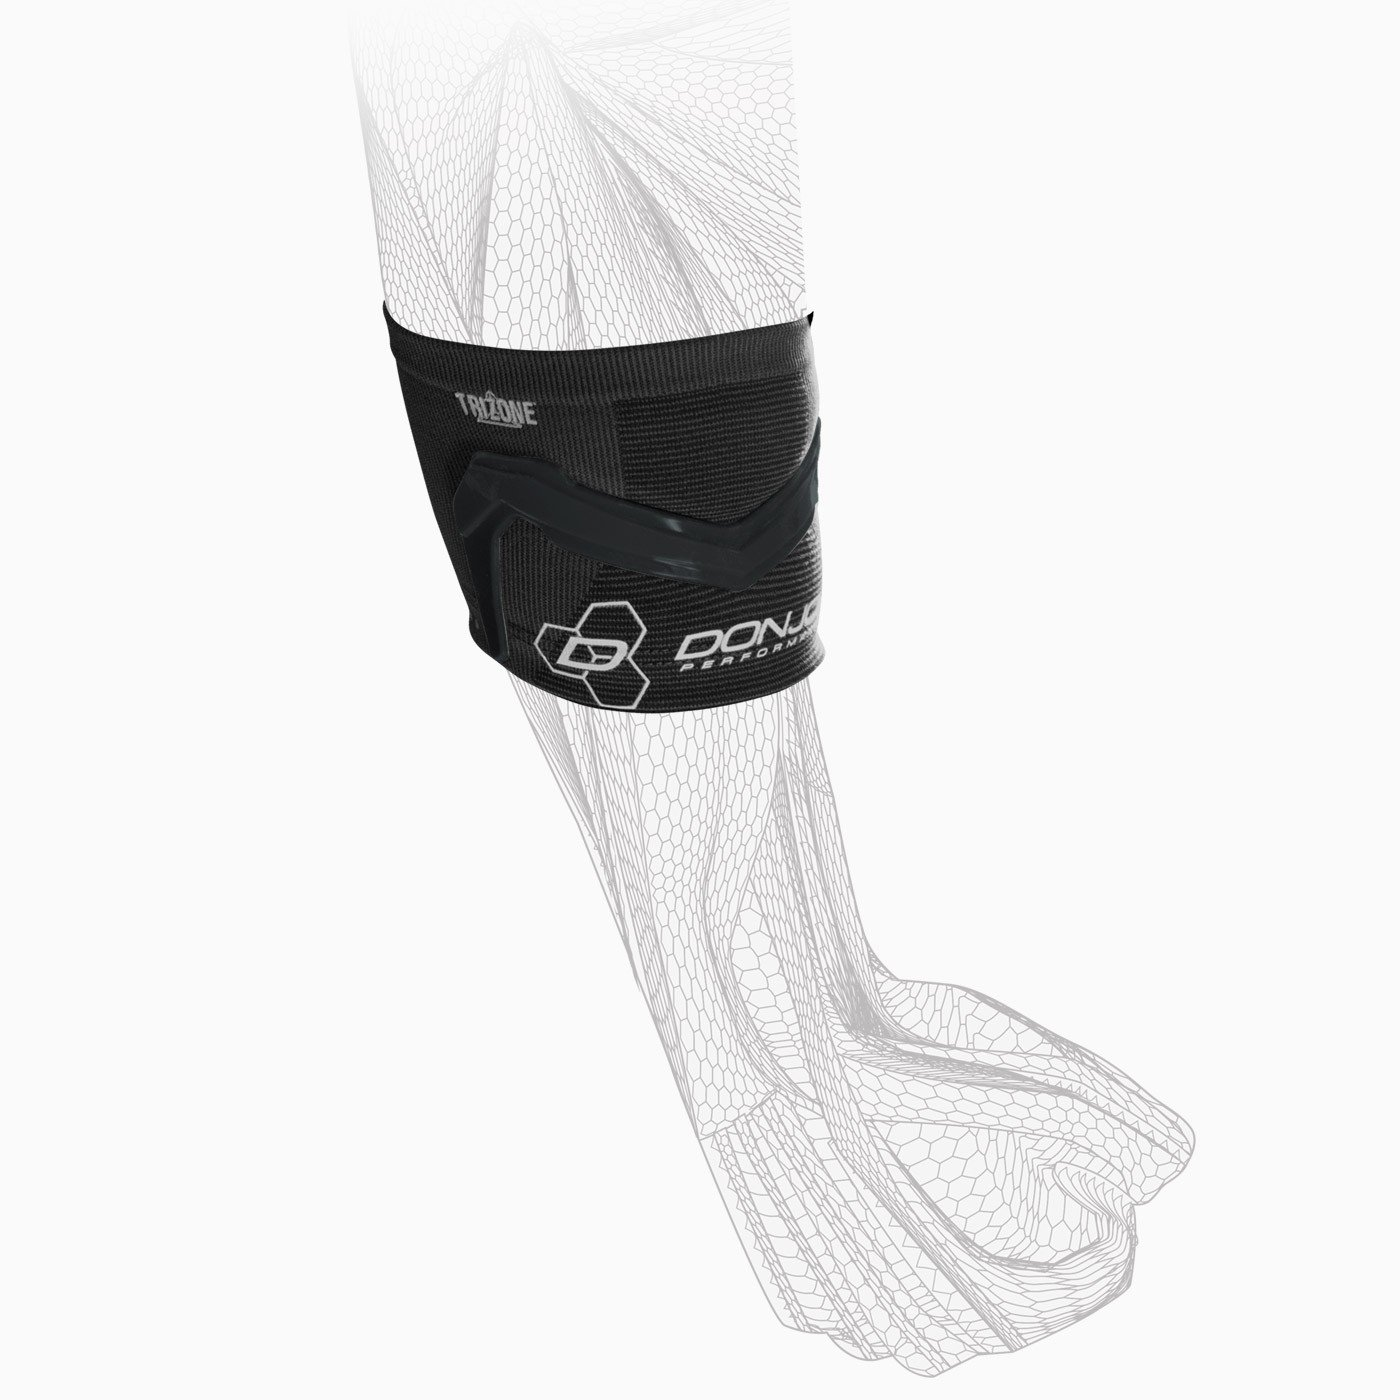 DonJoy Performance TRIZONE Compression Sleeve: Tennis/Golfers Elbow Support, Black, Medium